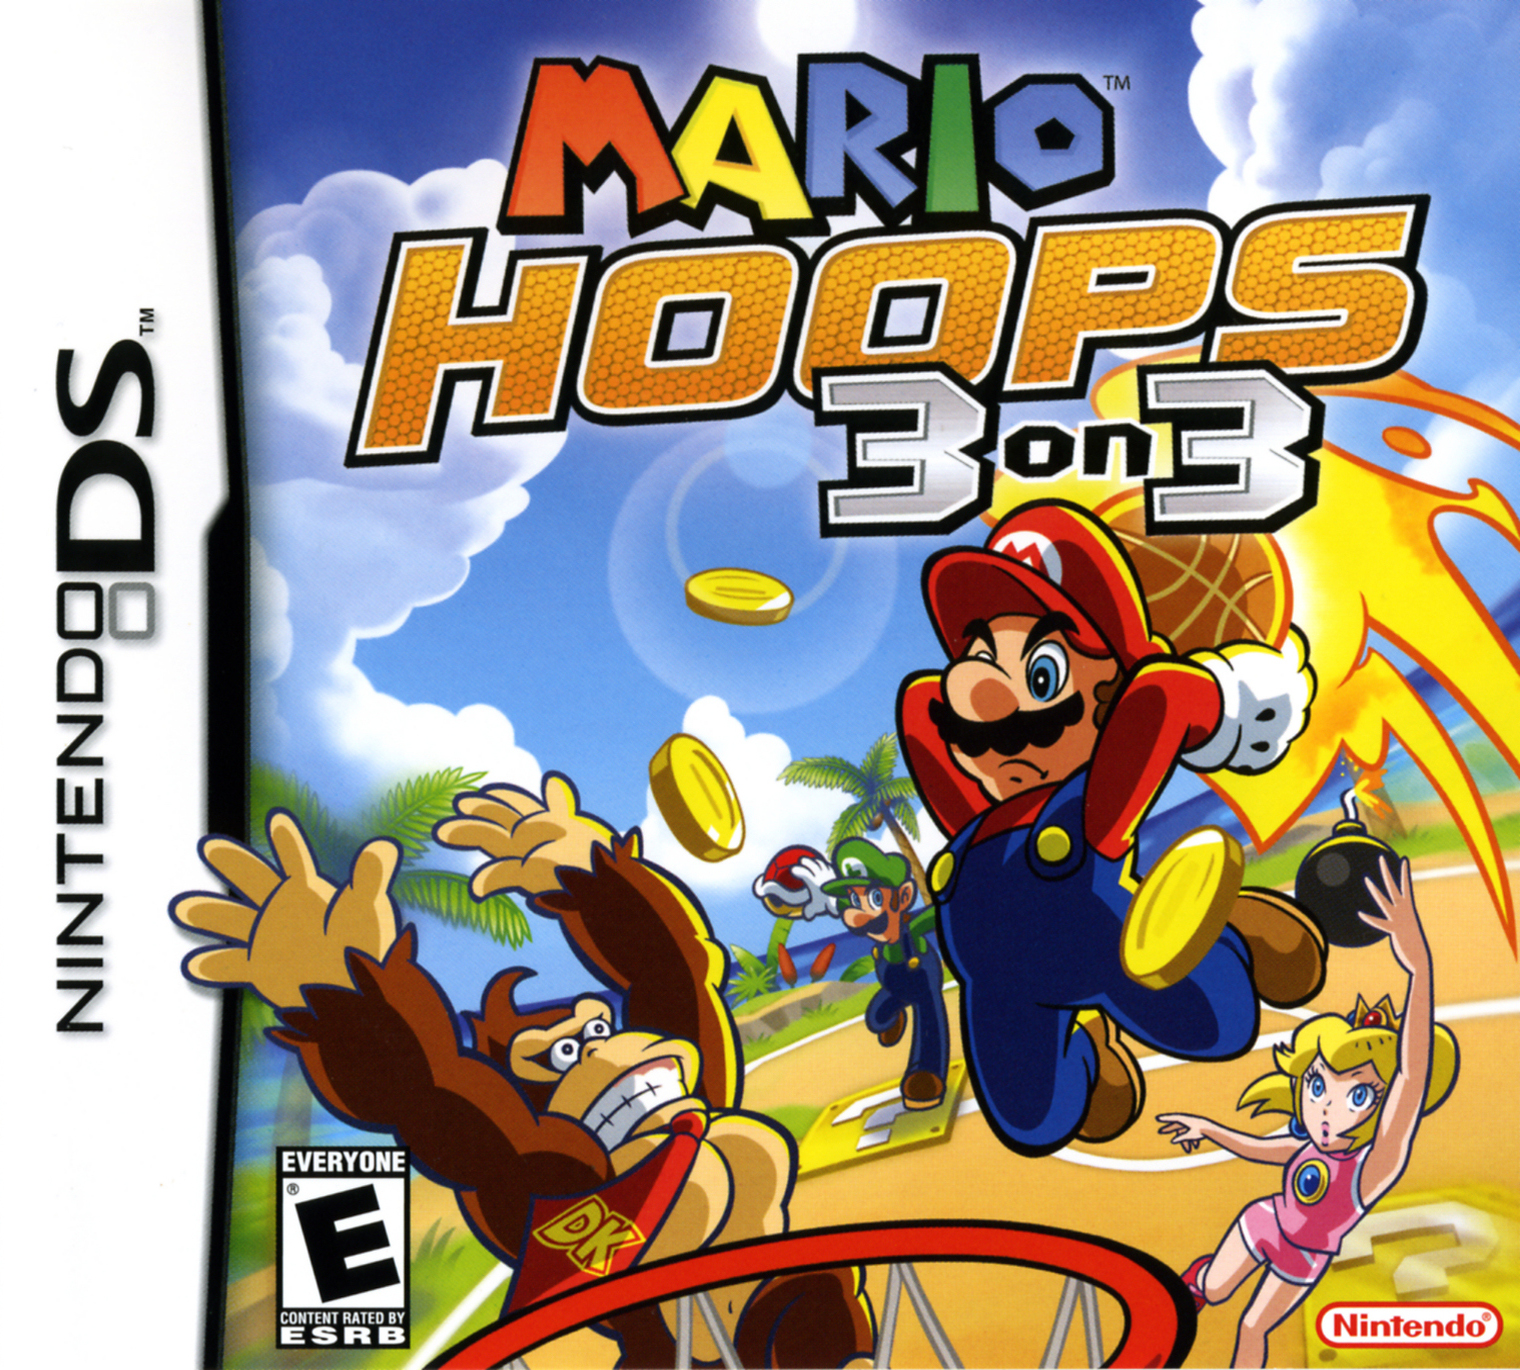 Mario Hoops 3 on 3/DS